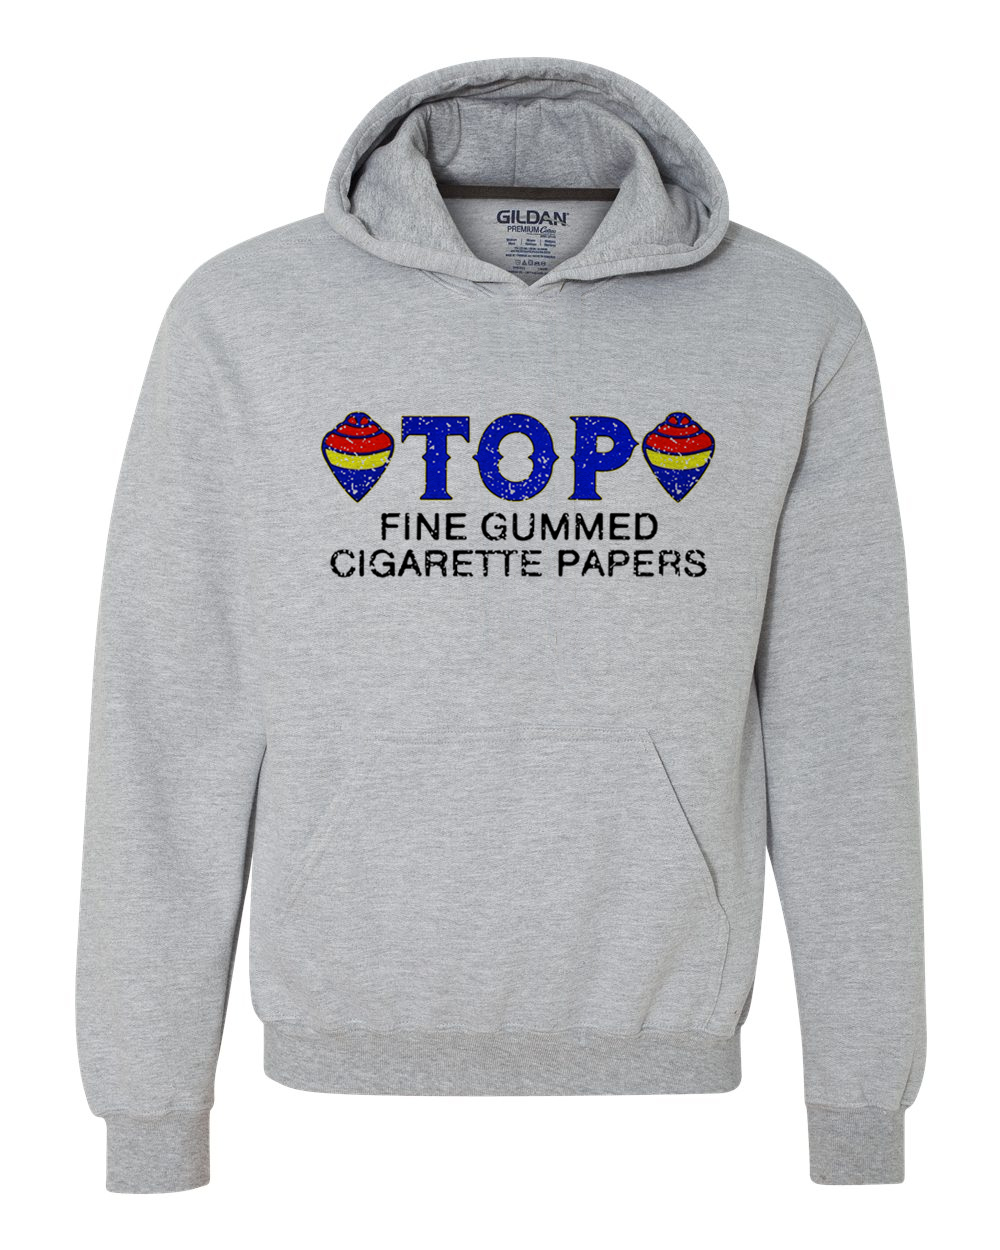 TOP Fine Cigarette Rolling paper graphic hoodie hooded zig zag pot vintage retro